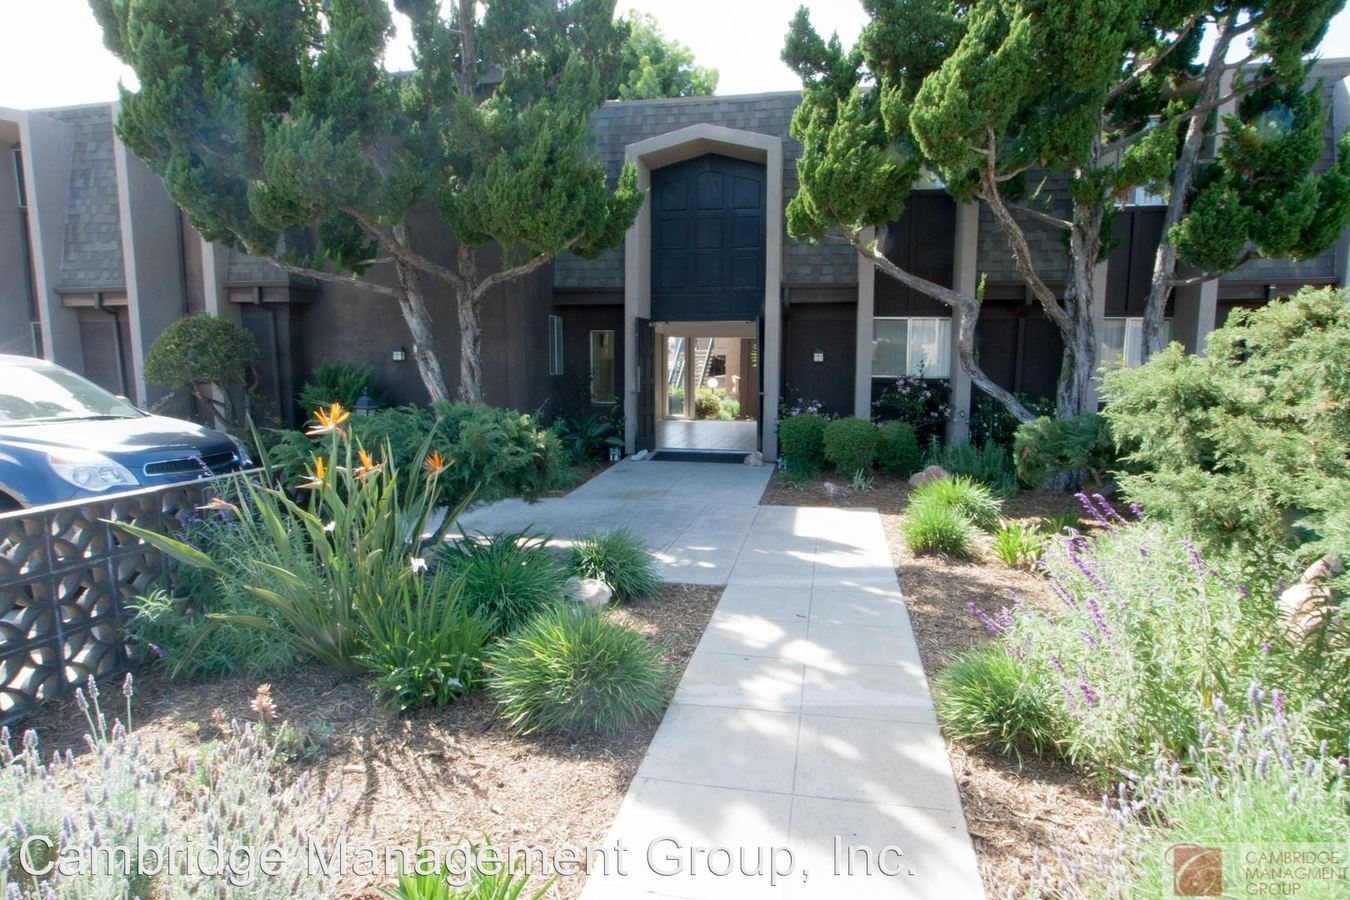 1 Bedroom 1 Bathroom Apartment for rent at 414 S. Lincoln Ave in El Cajon, CA